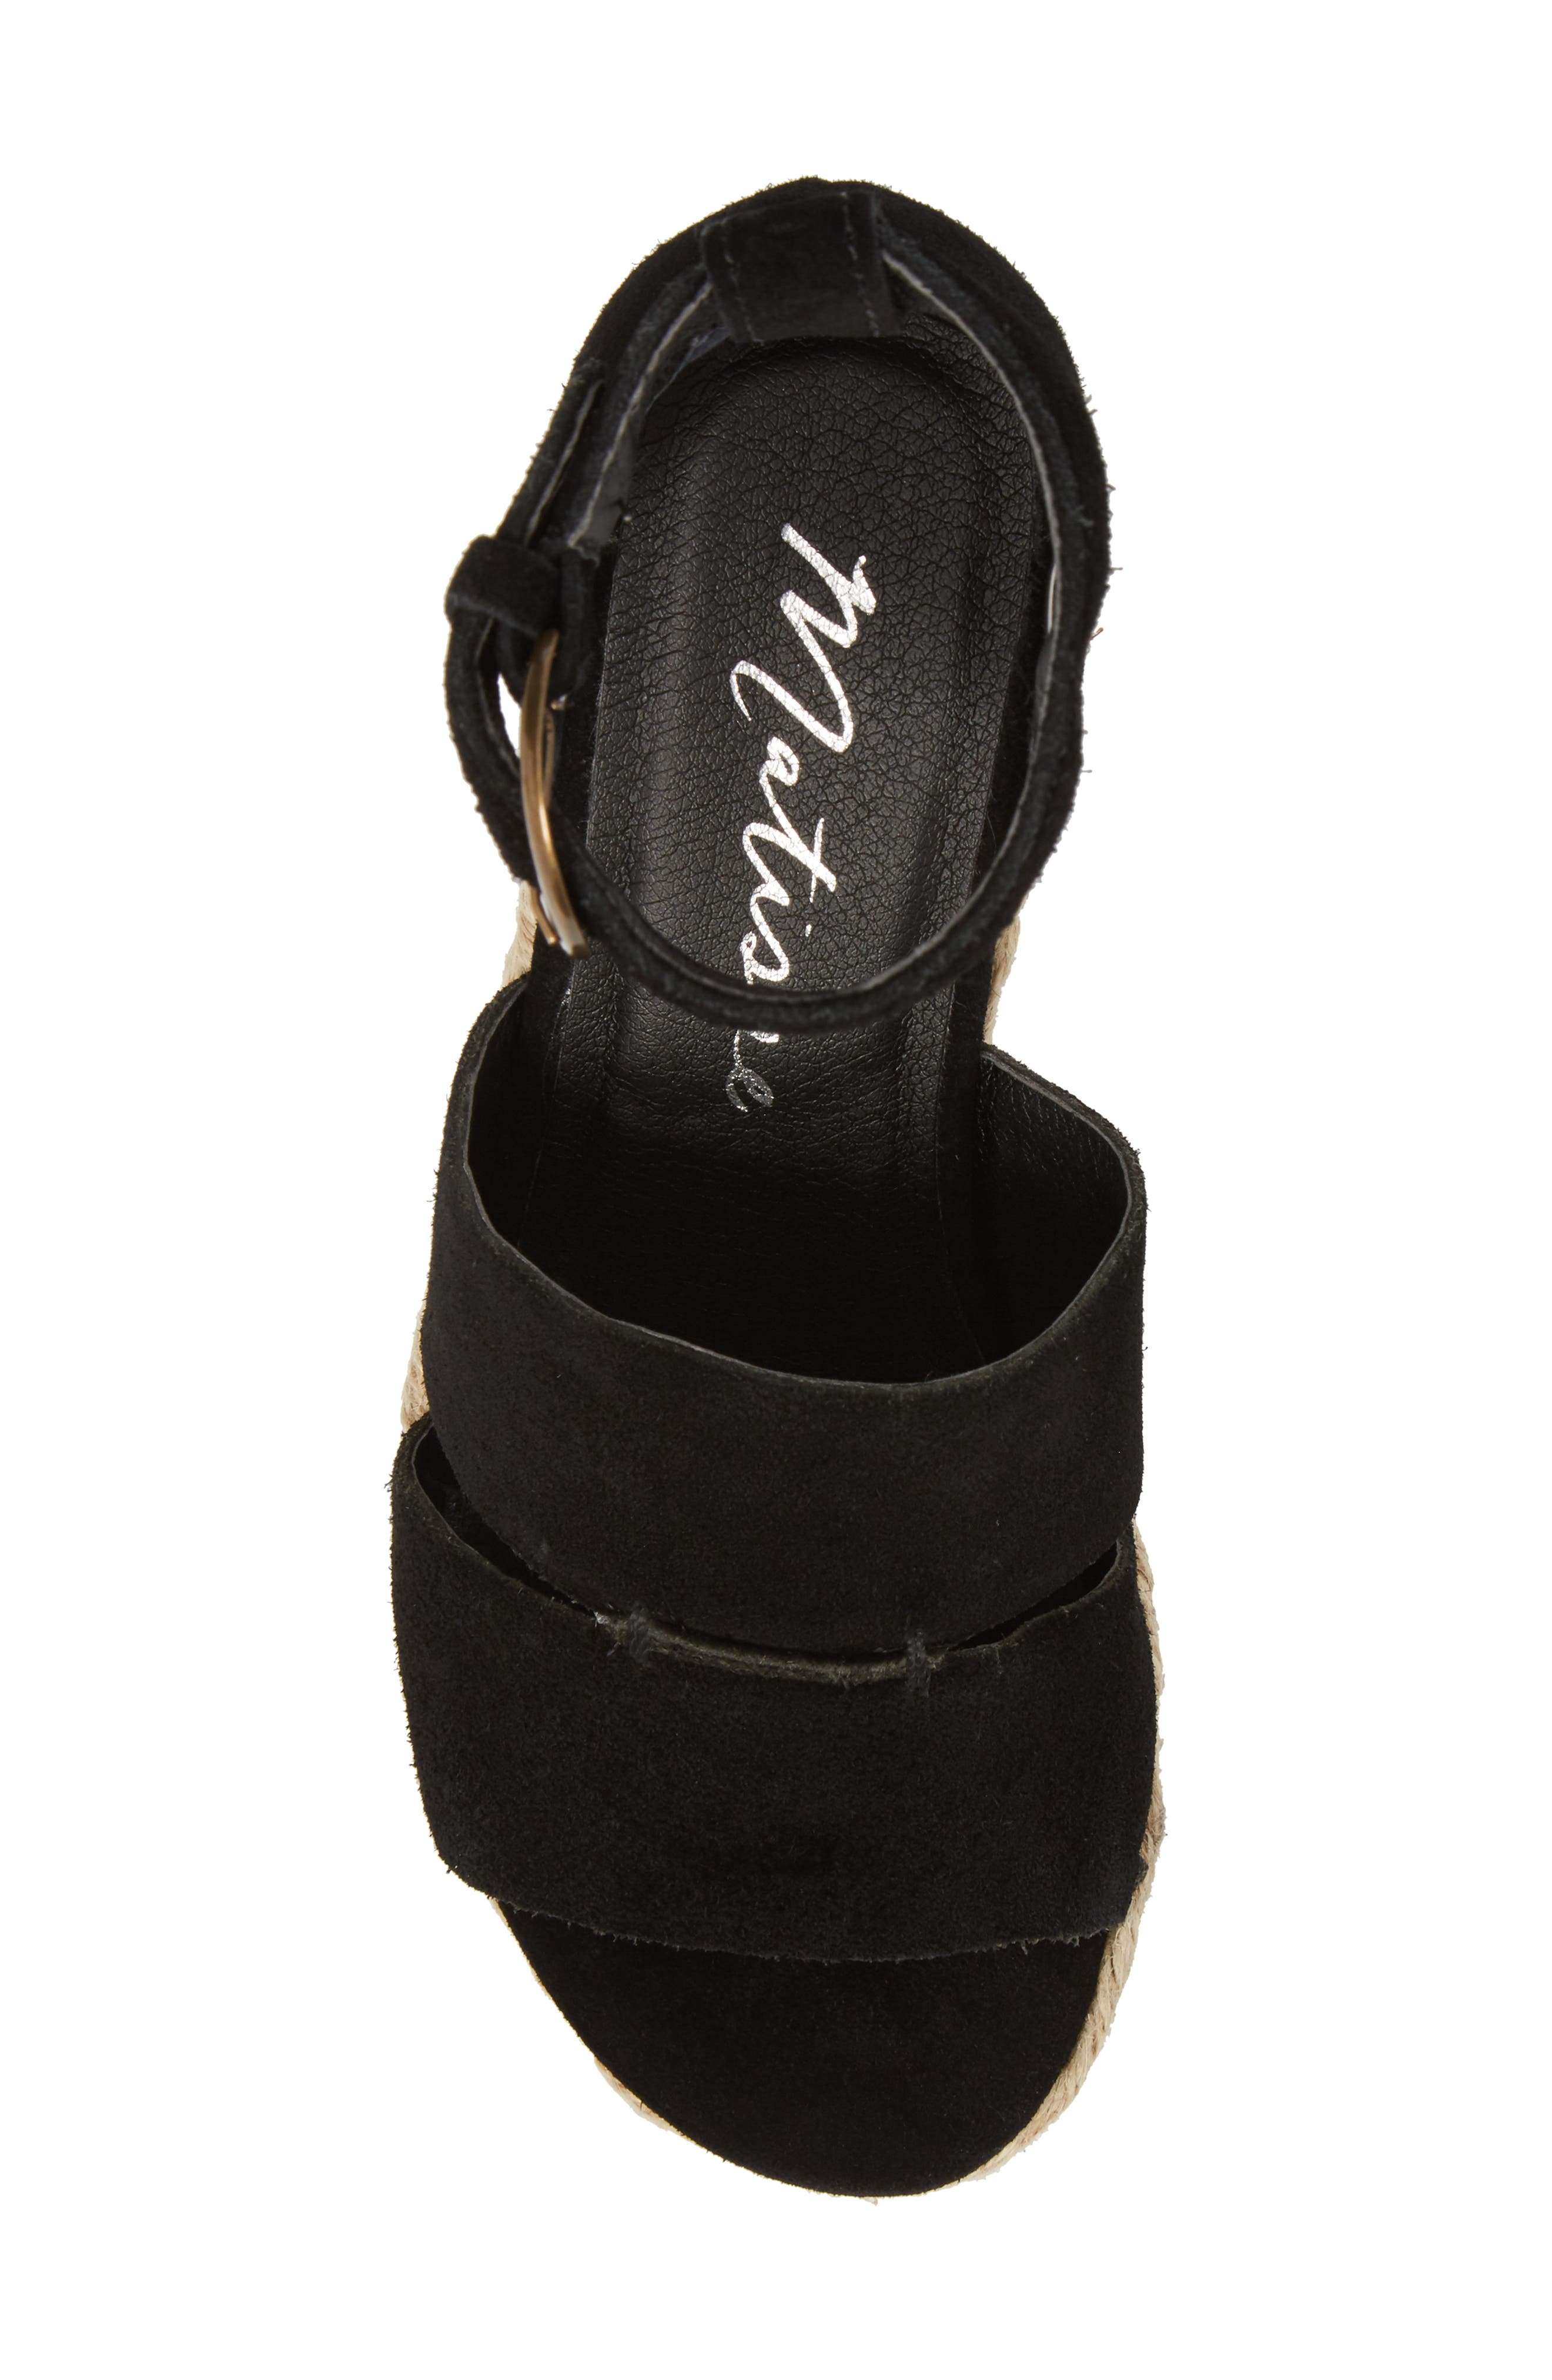 Cha Cha Espadrille Wedge Sandal,                             Alternate thumbnail 5, color,                             BLACK SUEDE